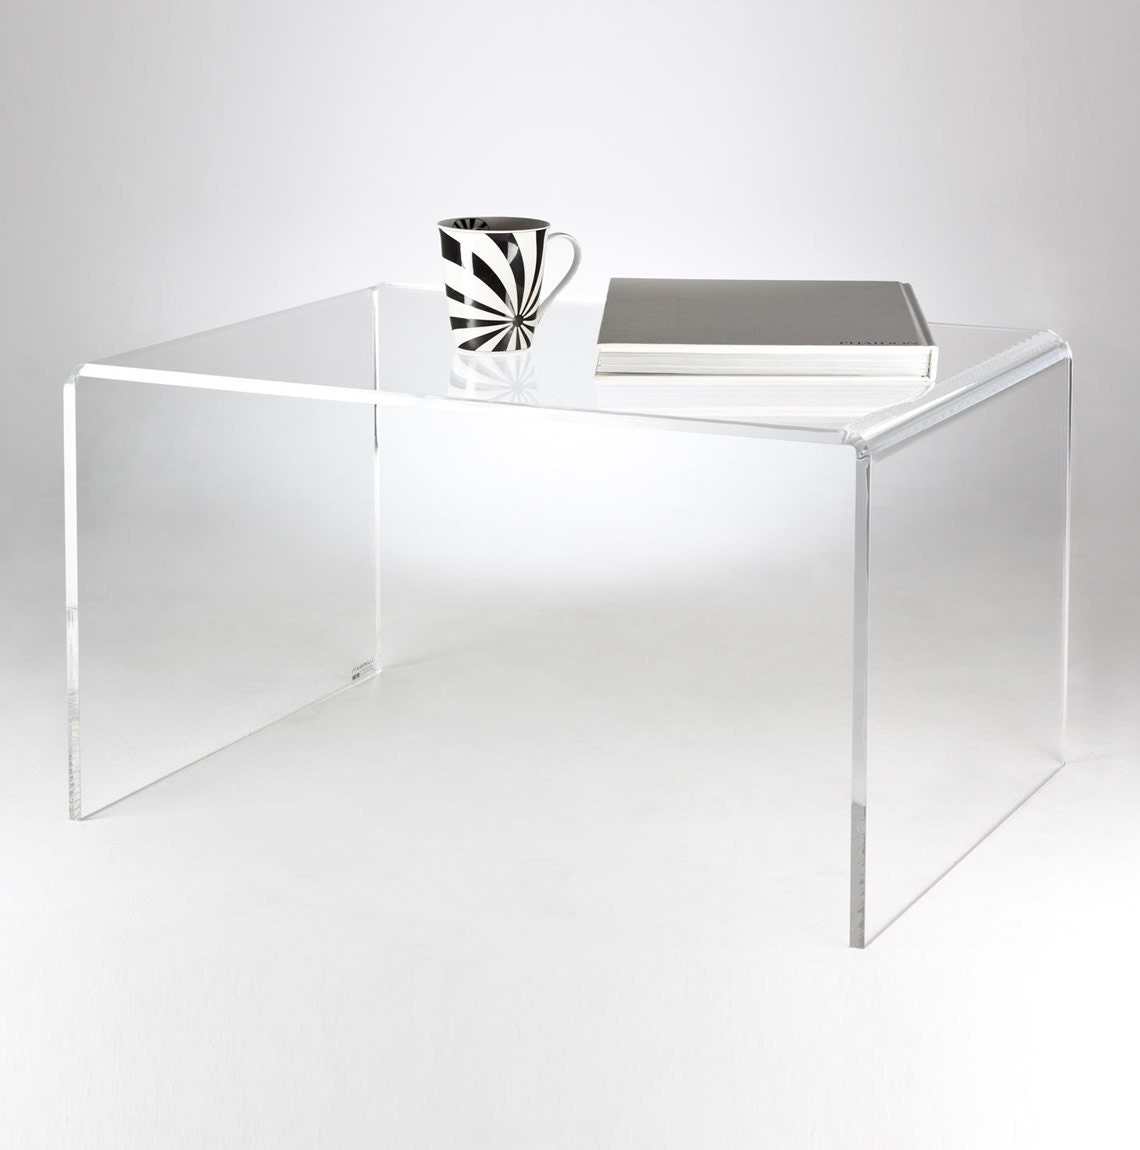 Clear acrylic coffee table premium acrylic made in the uk Acrylic clear coffee table